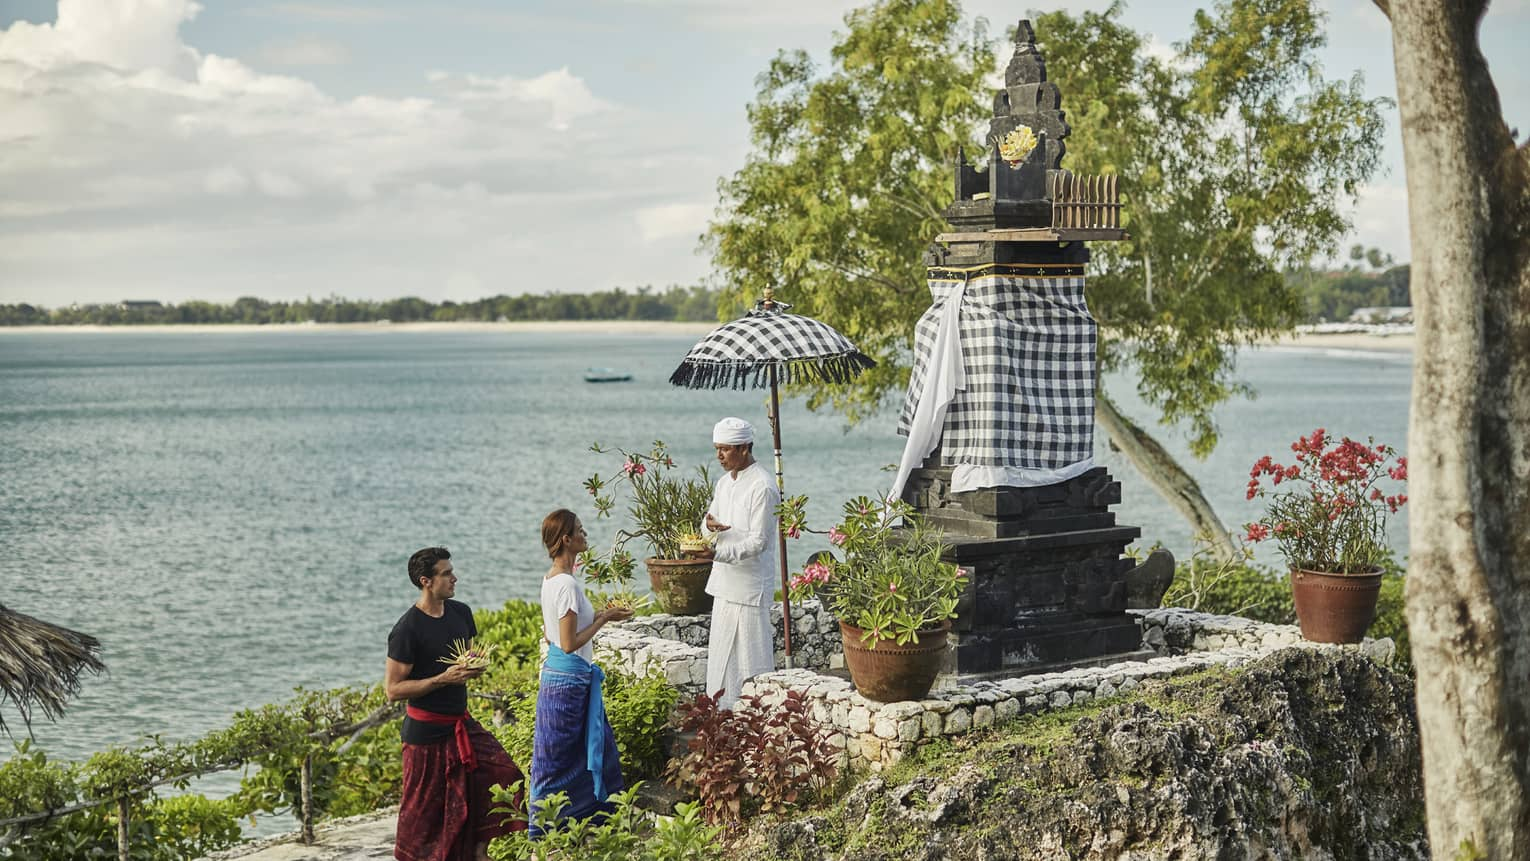 High Priest Aji Ngurah stands by shrine with black-and-white checkered umbrella, cloth, as man and woman make offering